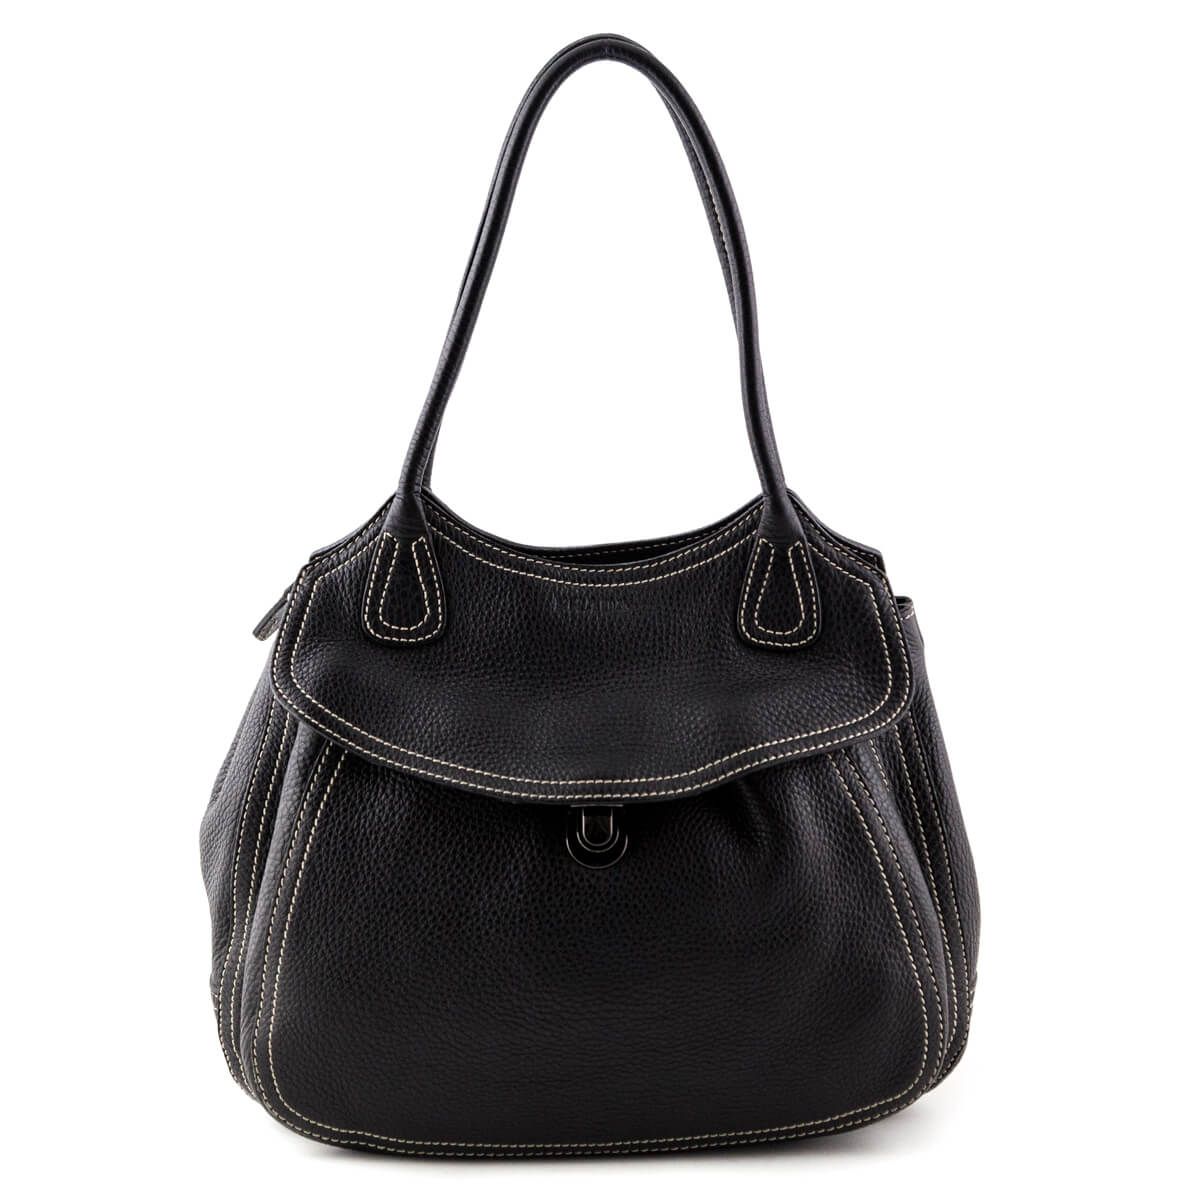 cd76d57bf11891 Prada Black Vitello Daino Pocket Hobo Shoulder Bag - LOVE that BAG -  Preowned Authentic Designer ...